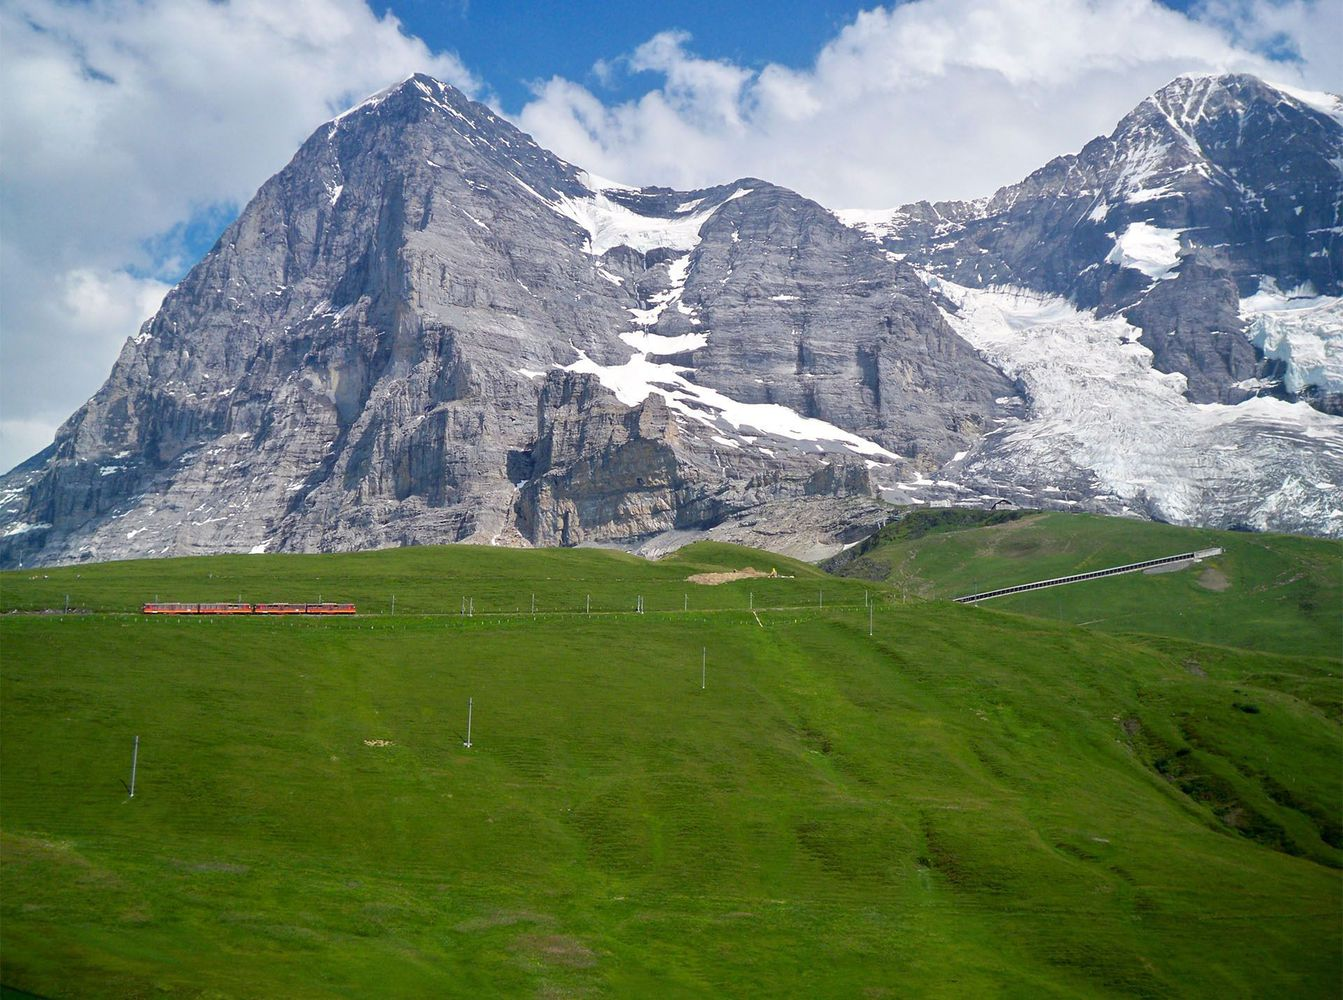 Switzerland%20jungfrau%20train%20by%20samantha%20reid